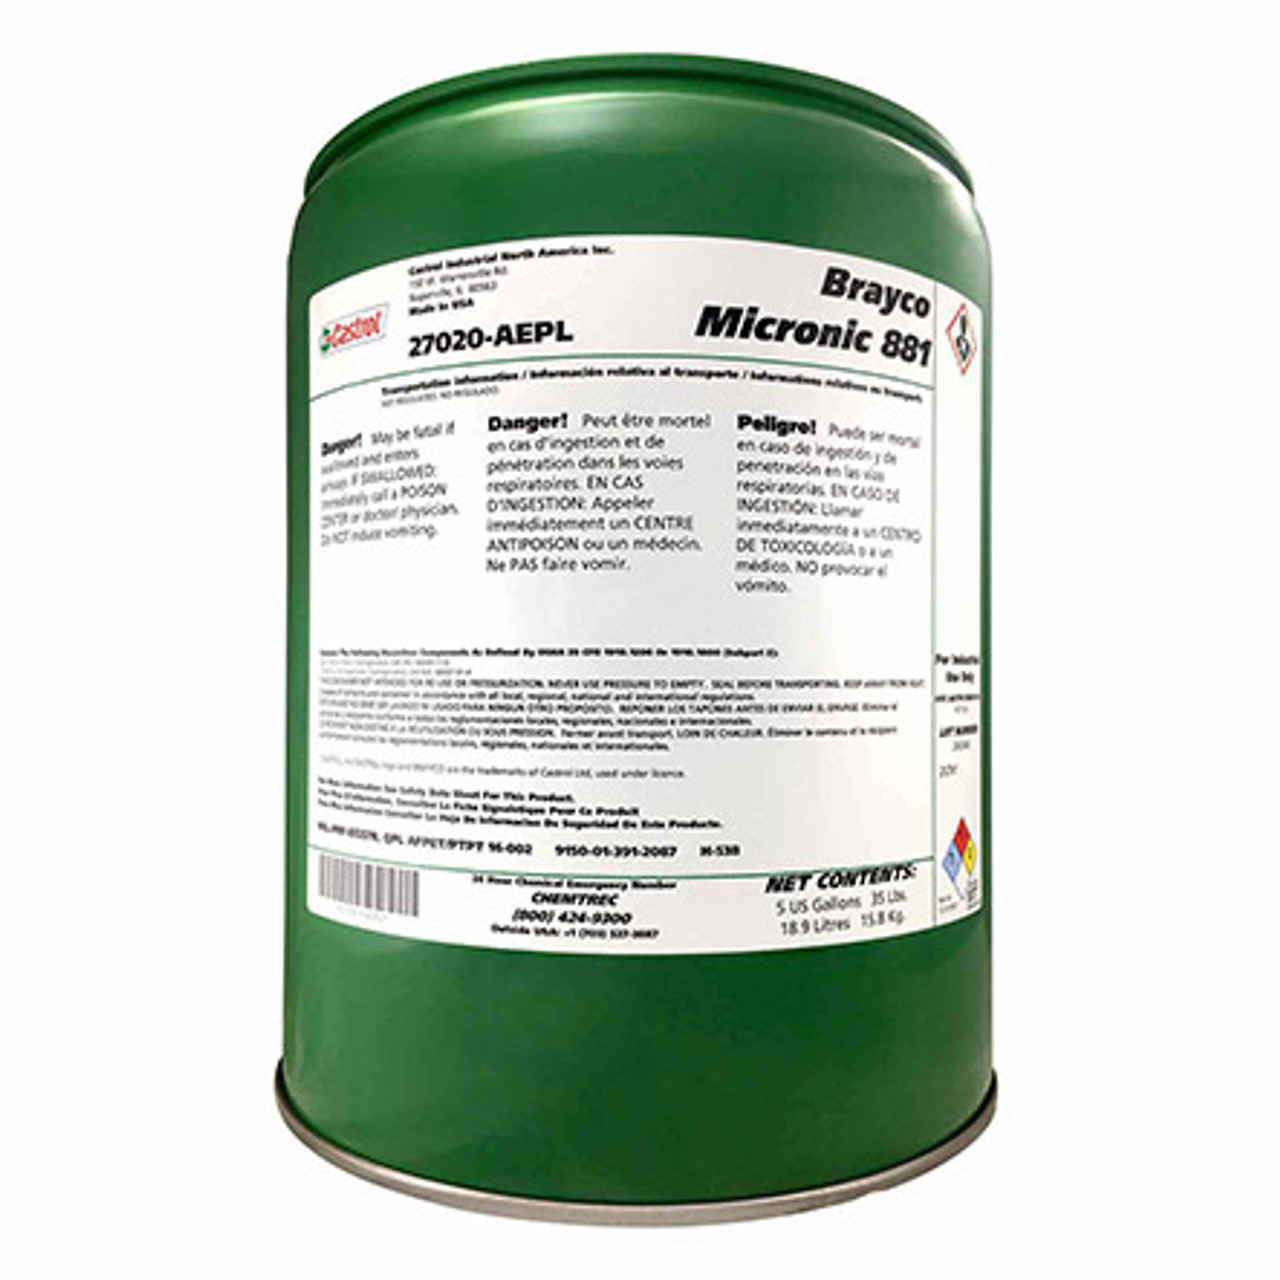 Castrol® Brayco™ Micronic 882 Red MIL-PRF-83282D (1) Spec Full Synthetic ISO 15 Hydraulic Fluid - 5 Gallon Steel Pail Part#: 1501A7by Castrol® Brayco™ Castrol® Brayco™ Micronic 882 Red MIL-PRF-83282D (1) Spec Full Synthetic ISO 15 Hydraulic Fluid - 5 Gallon Steel Pail